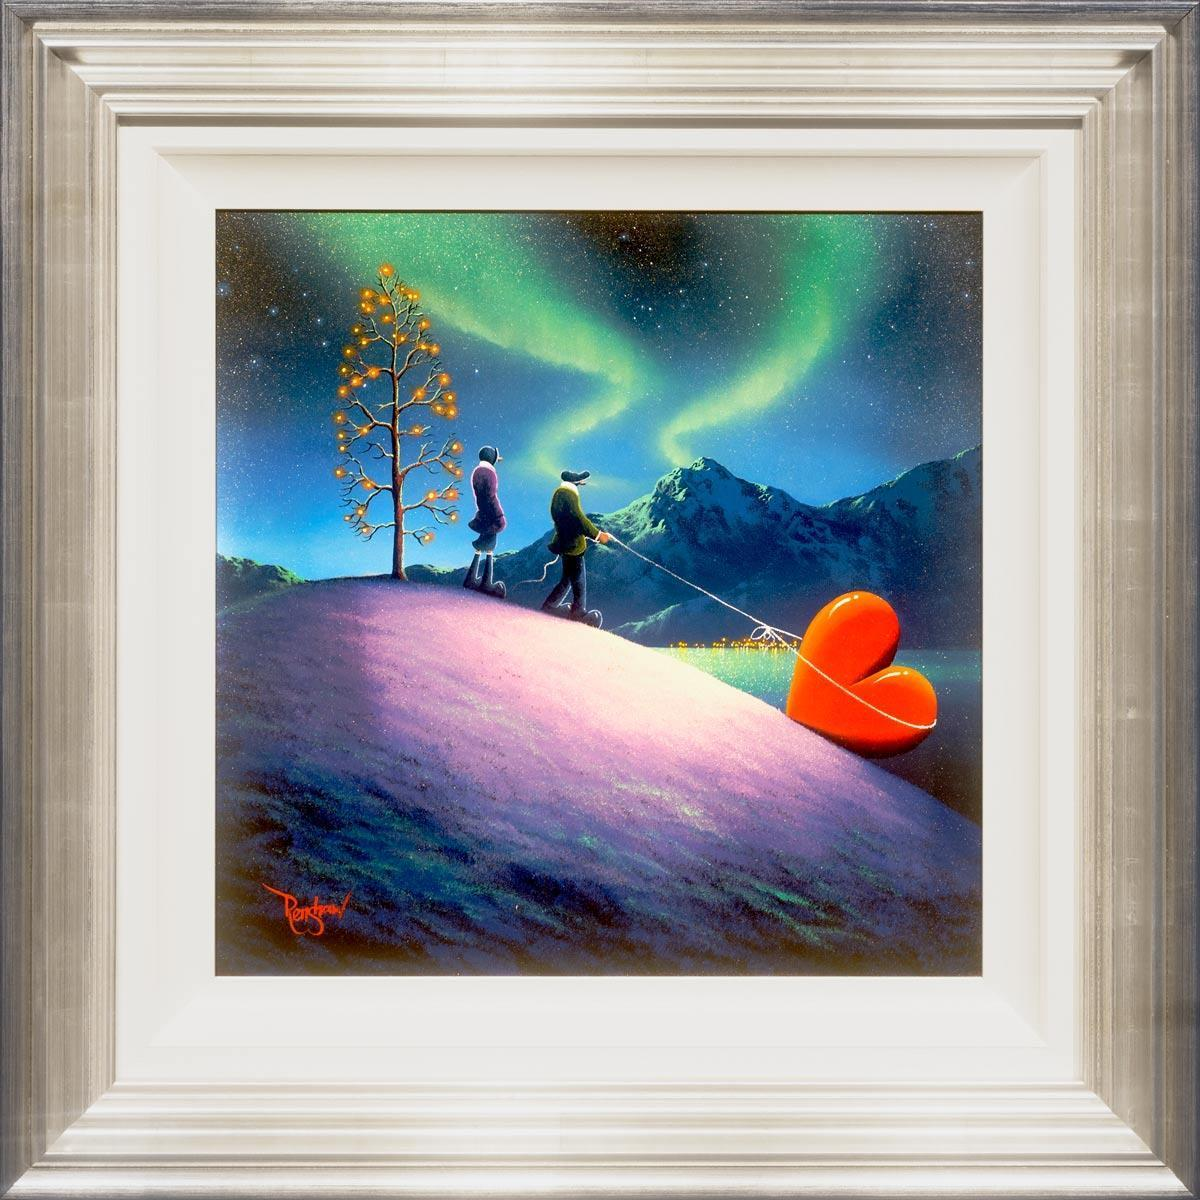 Union - Original - SOLD David Renshaw